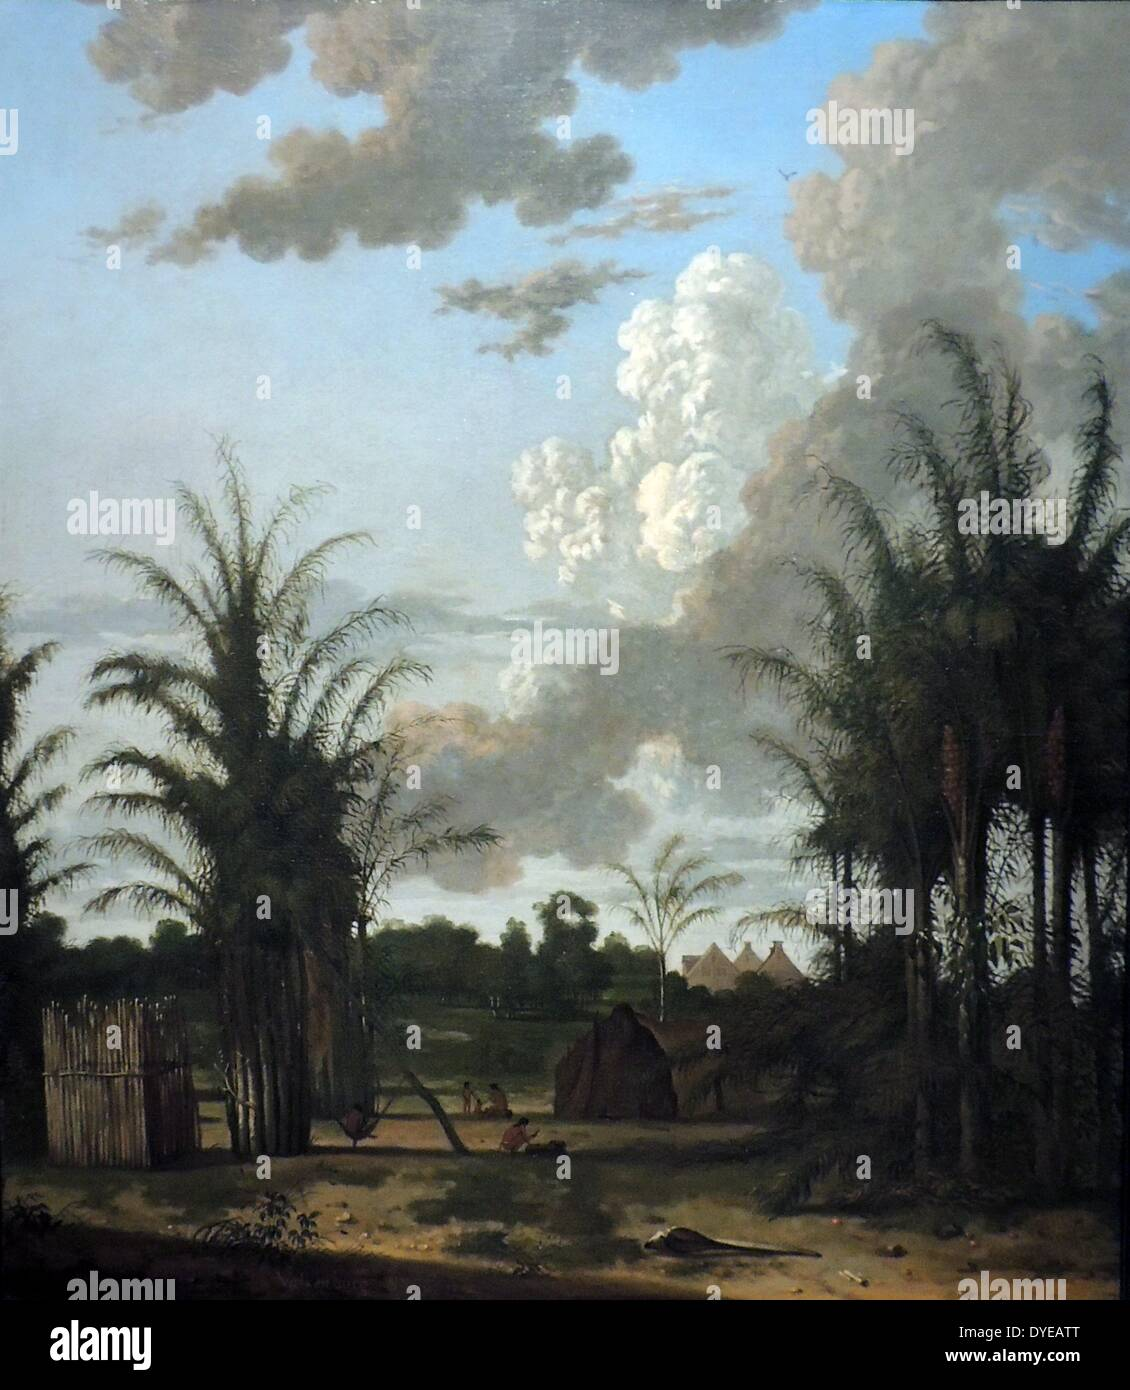 Plantation in Suriname by Dirk Valkenburg (1675-1721). Oil on Canvas, 1707. - Stock Image